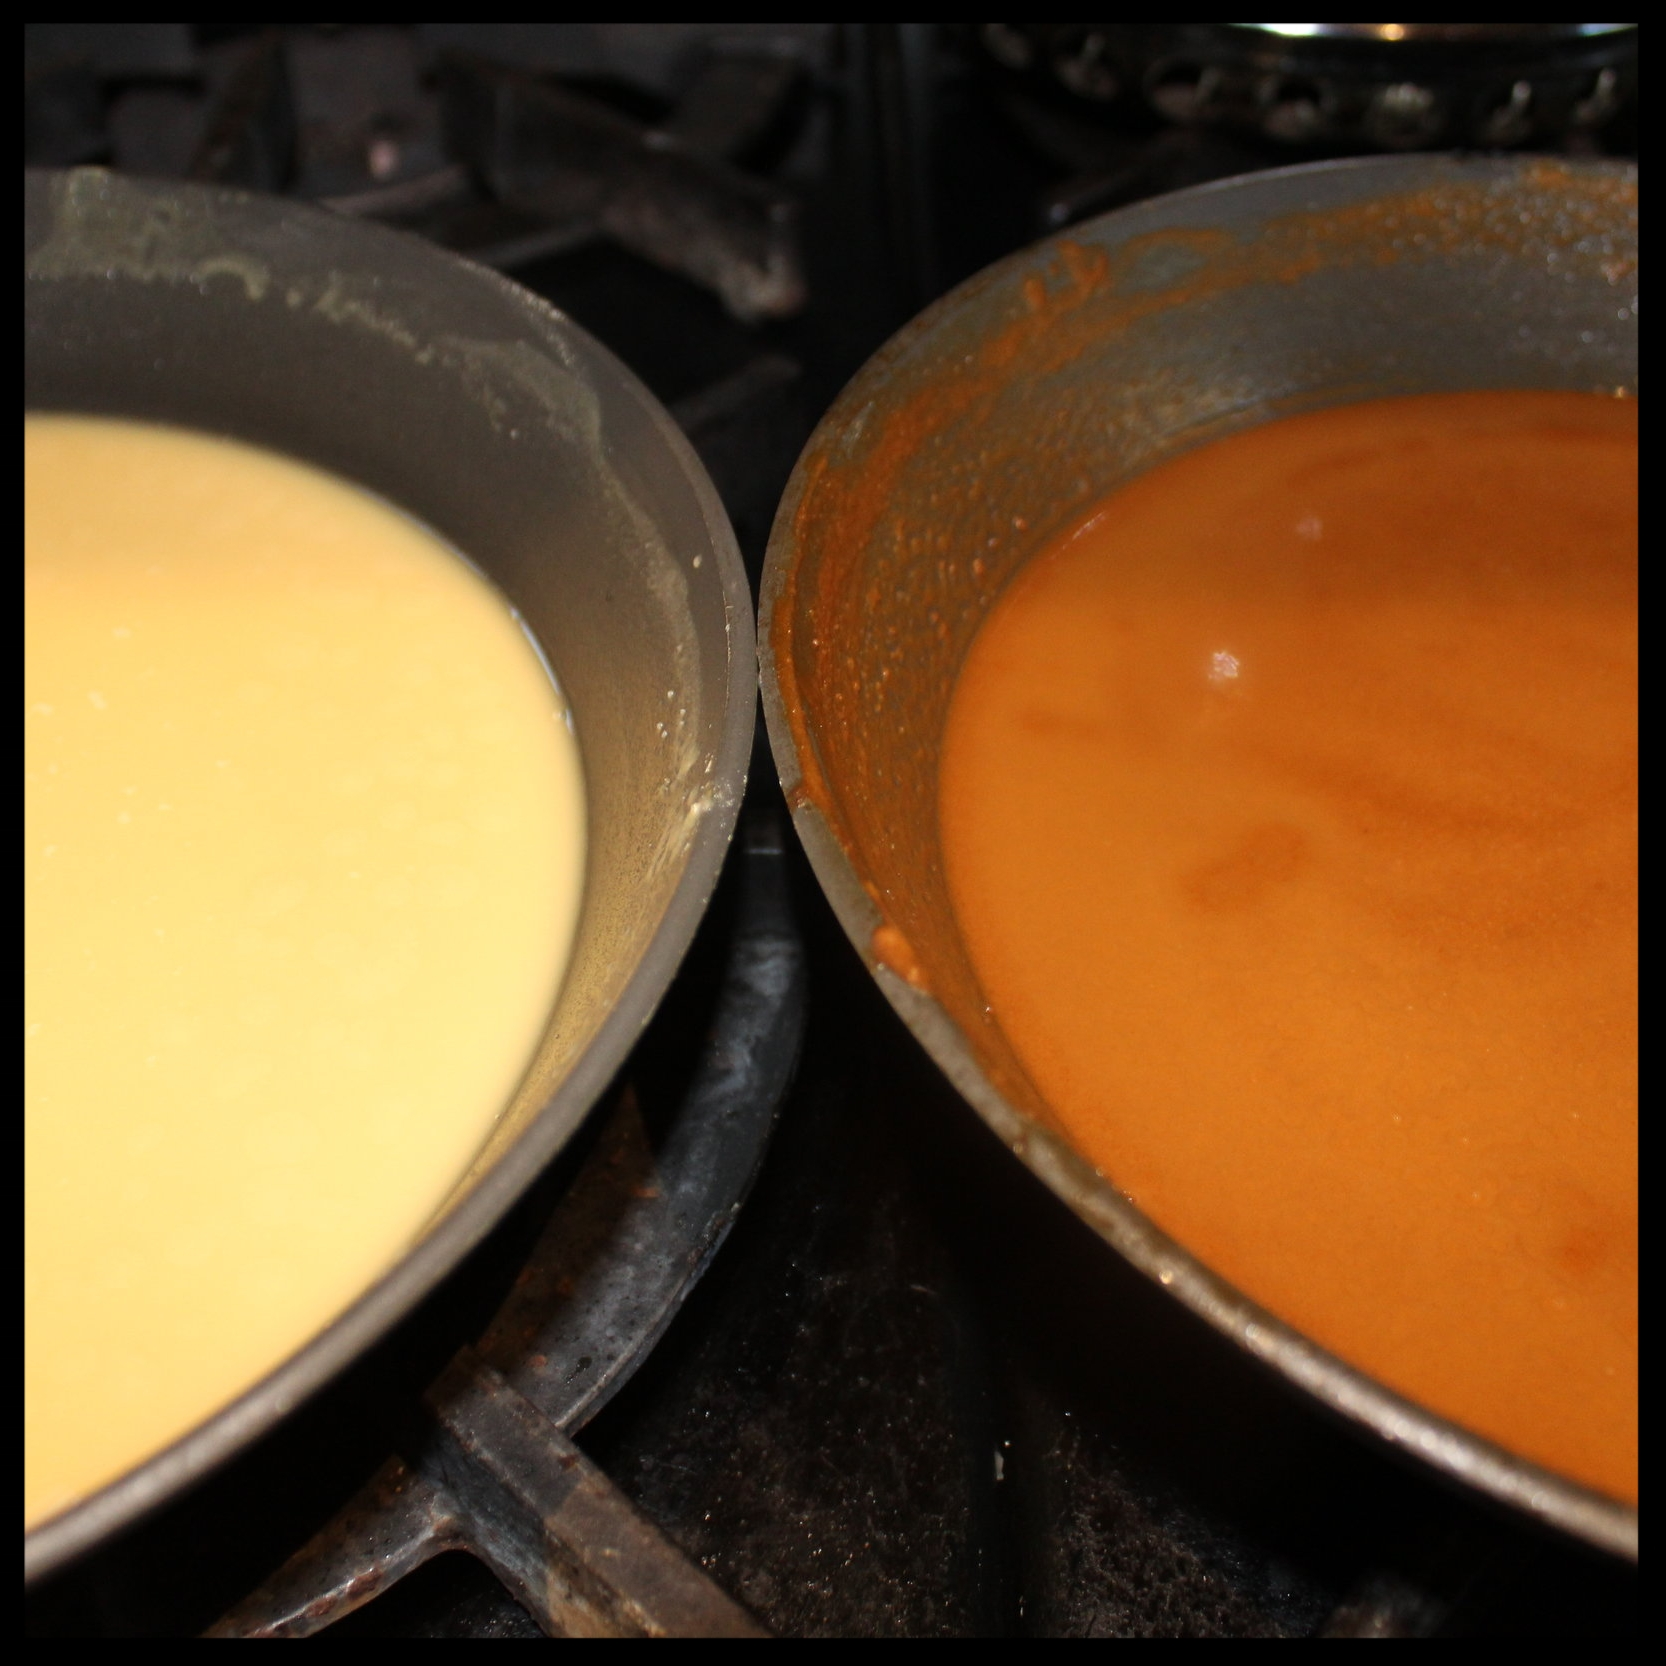 60 minutes:   The baked roux isn't even coming close to the rich brown roux that we see on the right. This darker brown variation will lend tons of flavor to your gumbo. The down side to a long-cooked roux is that the starches in the flour start to break down and are less apt to thicken as effectively as a lighter roux, but do lend a ton of flavor. The solution? Add more roux to your stock, or use gumbo file, or okra to punch up the thickening power.